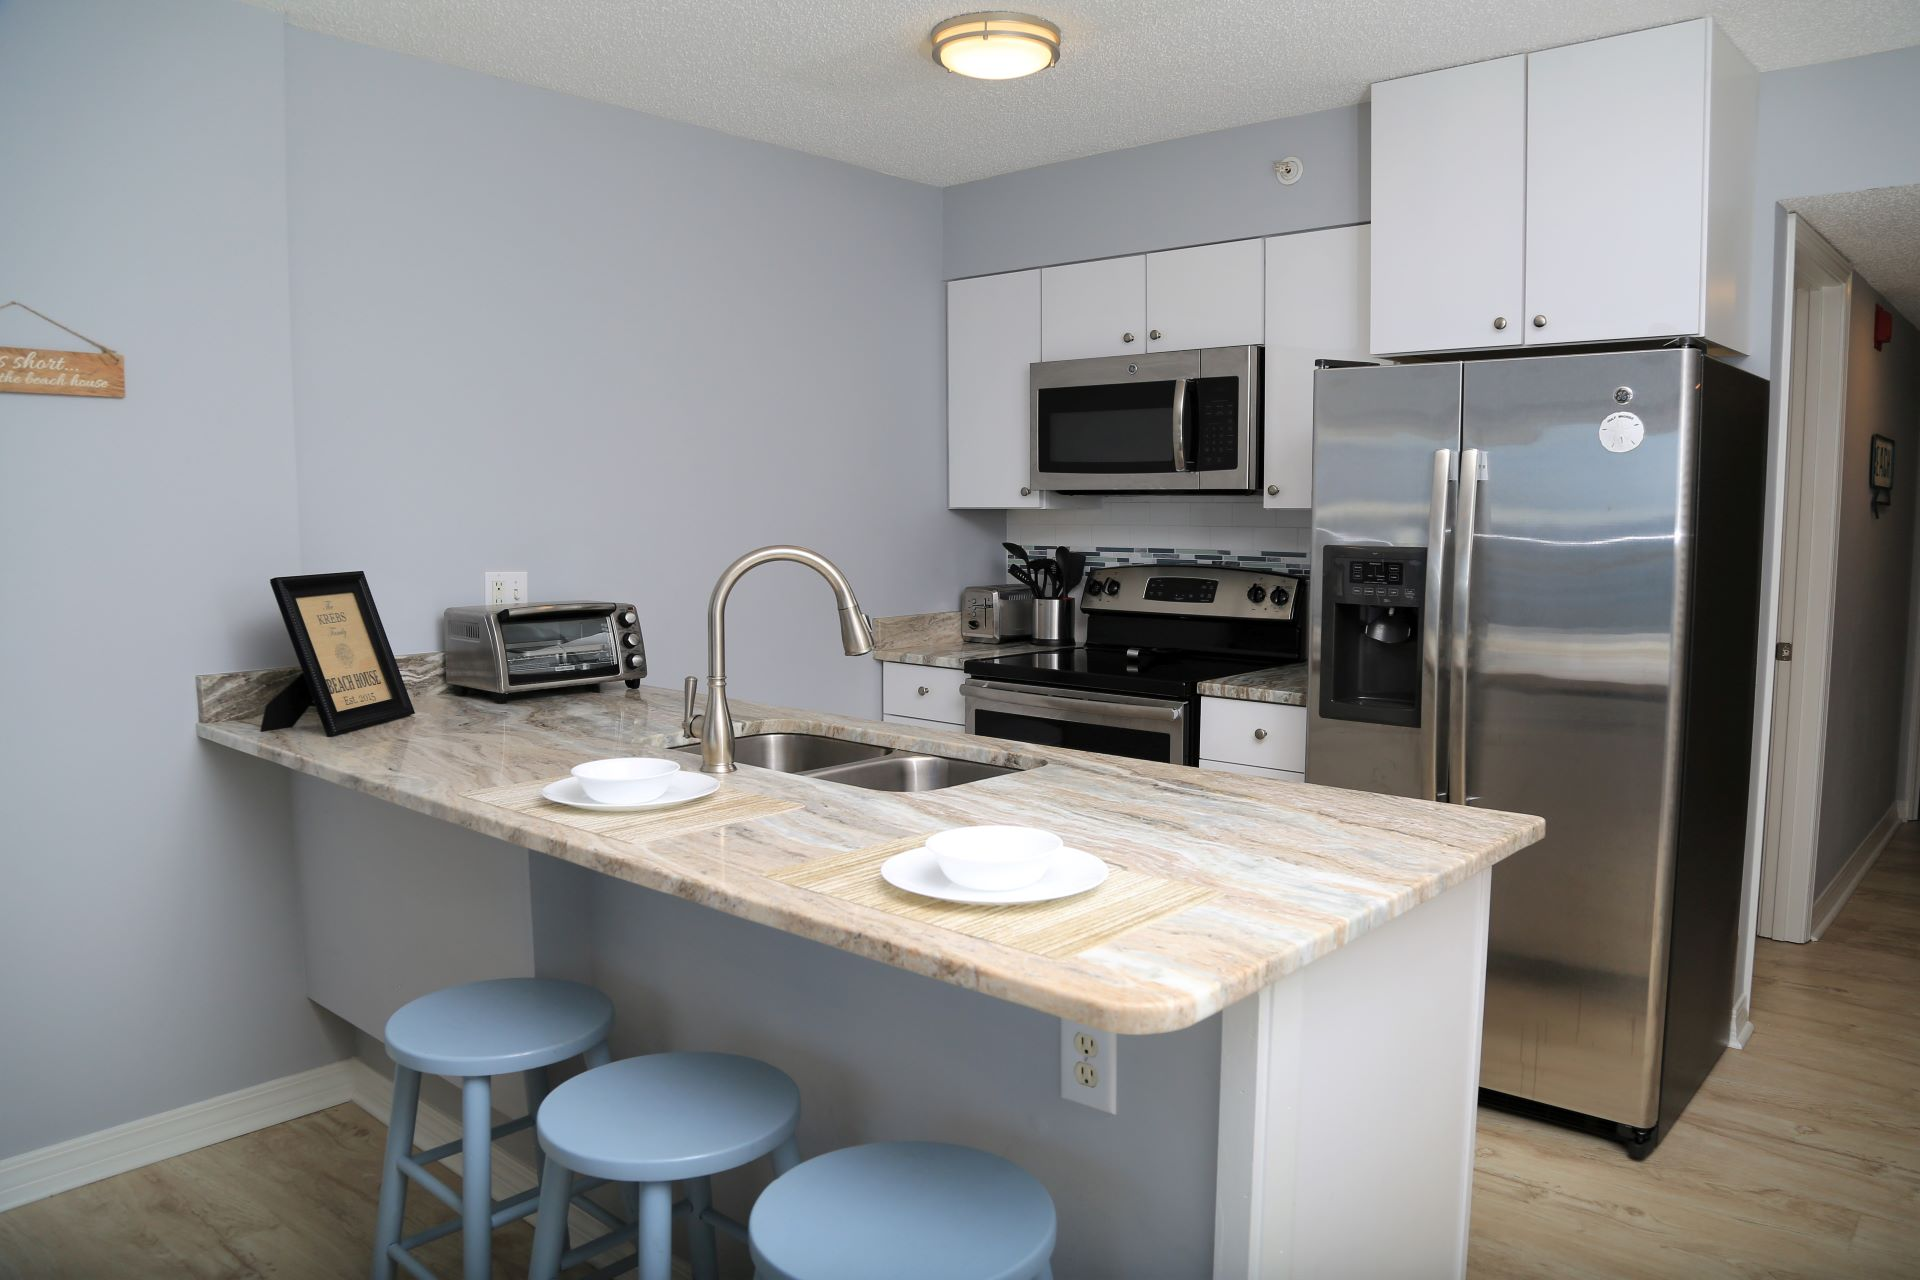 Gorgeous granite counters provide ample space for prepping m